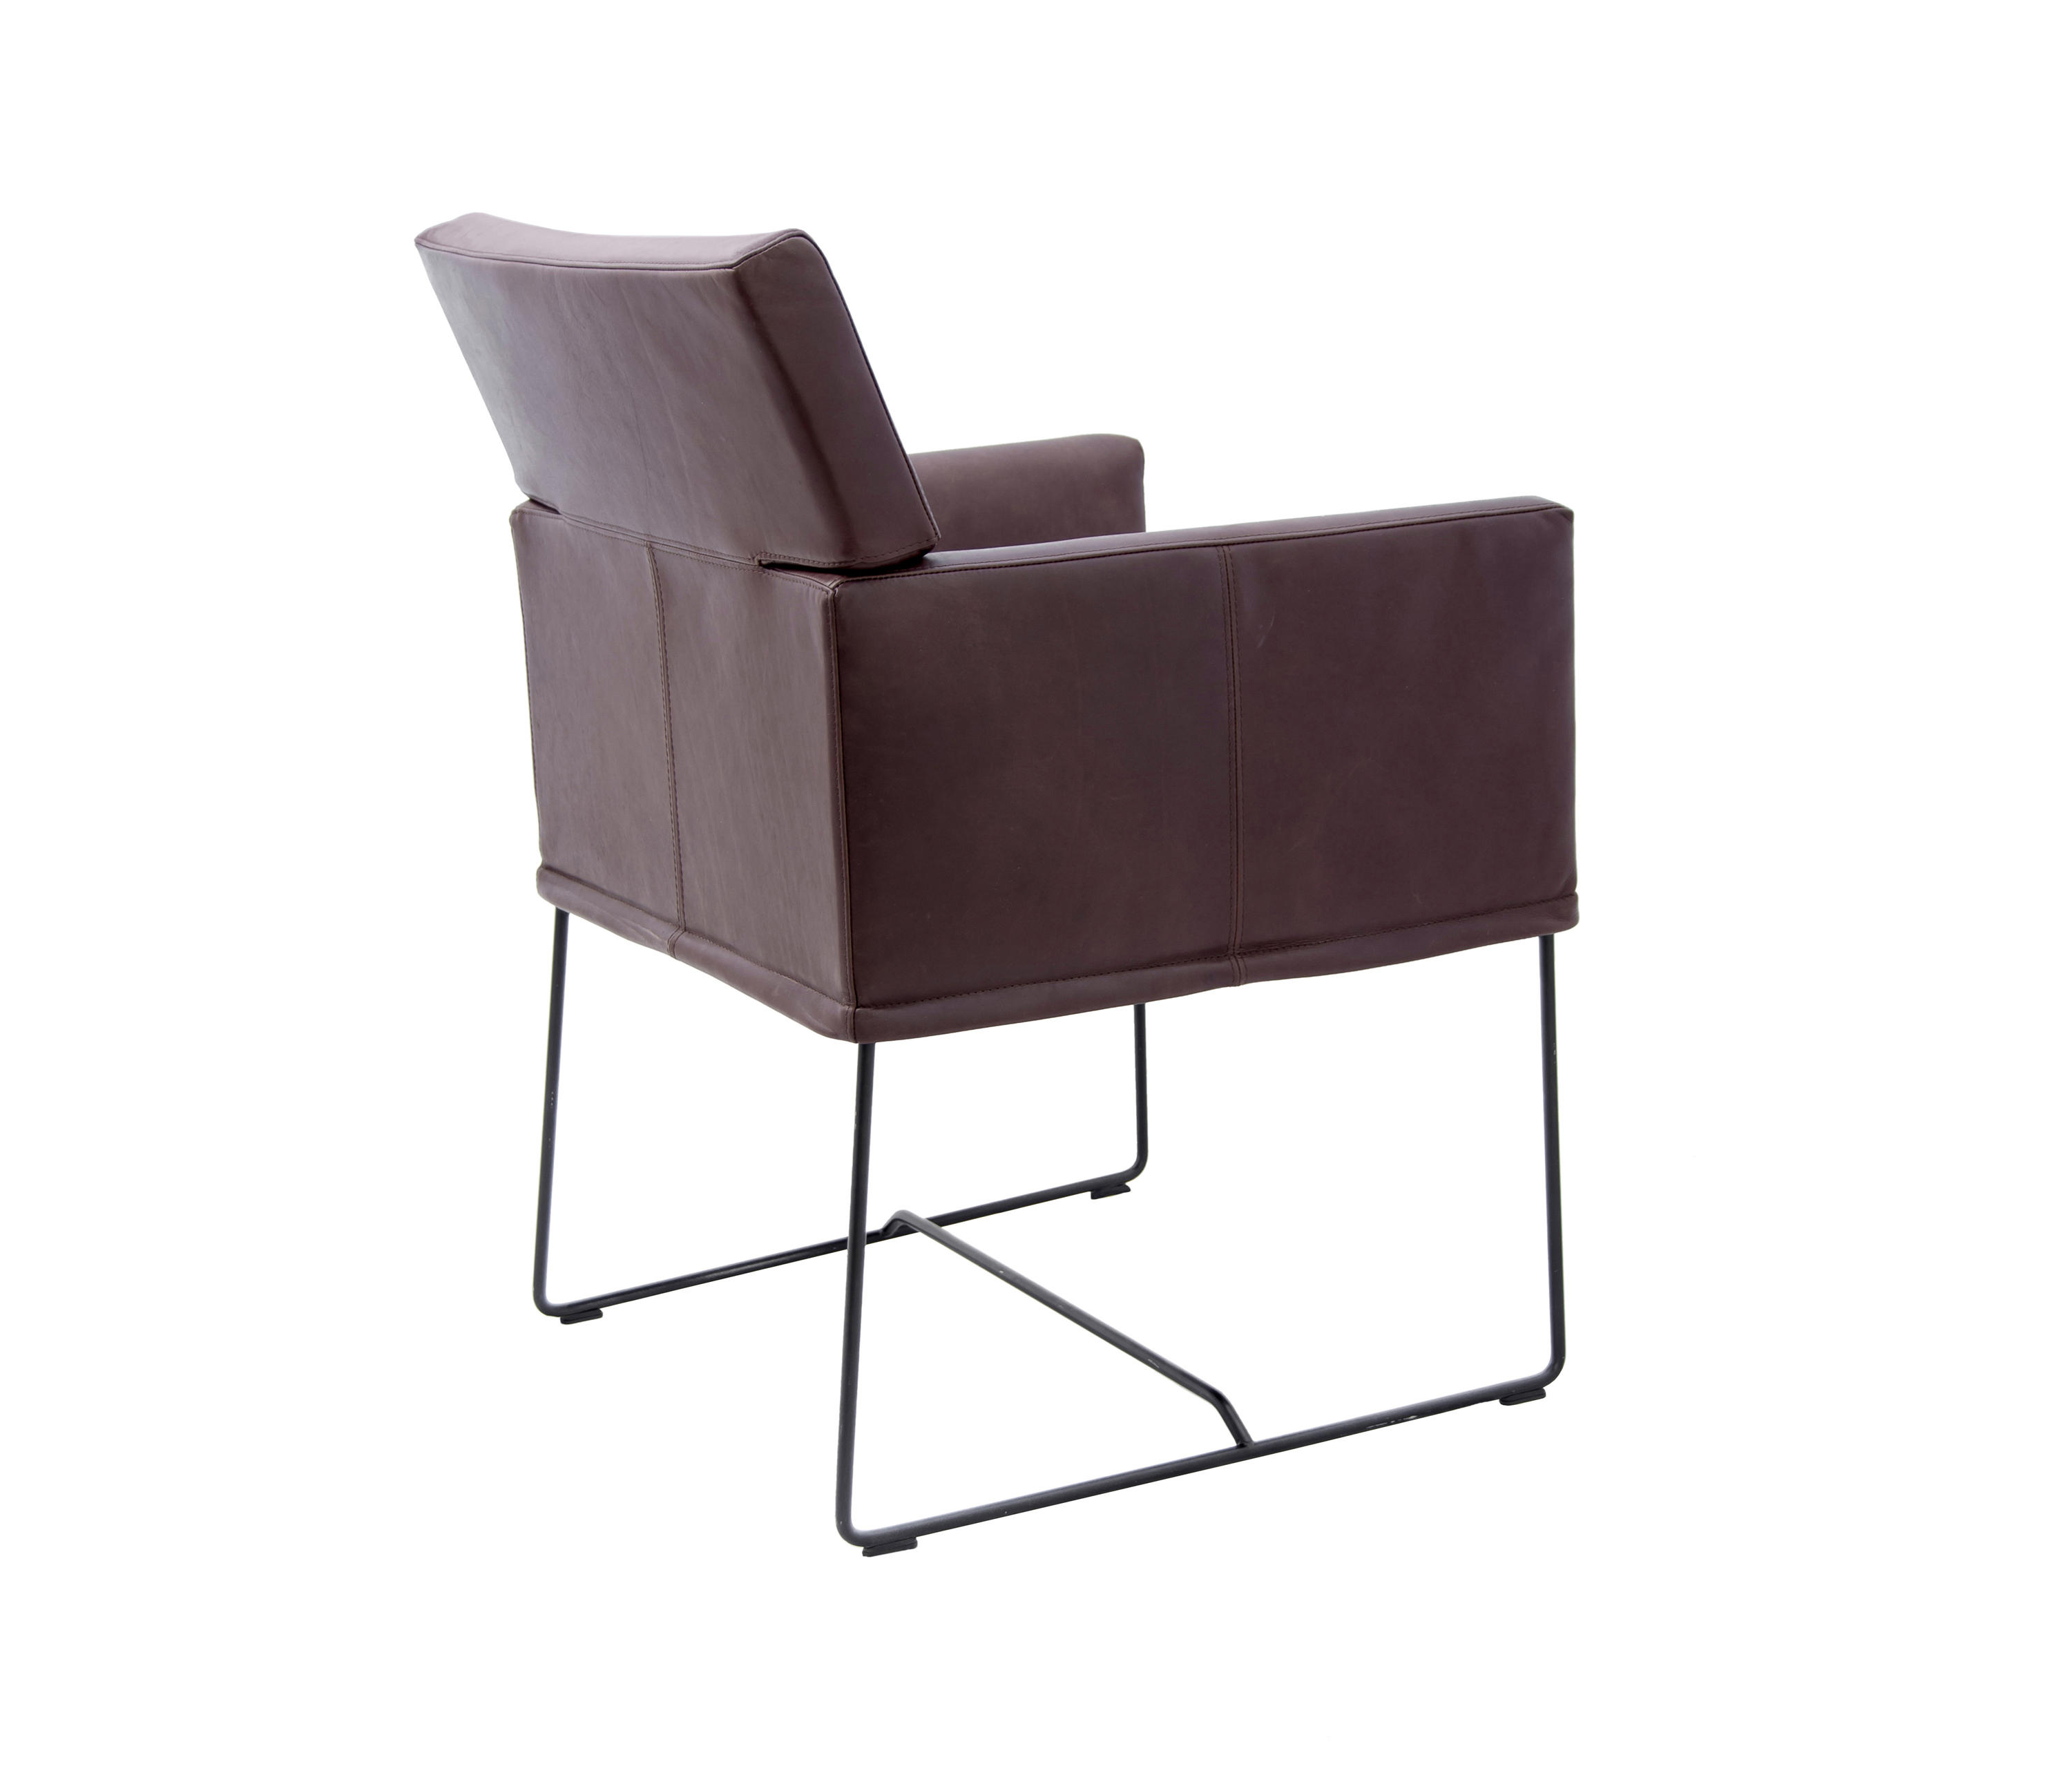 Caal Chair Chairs From Kff Architonic